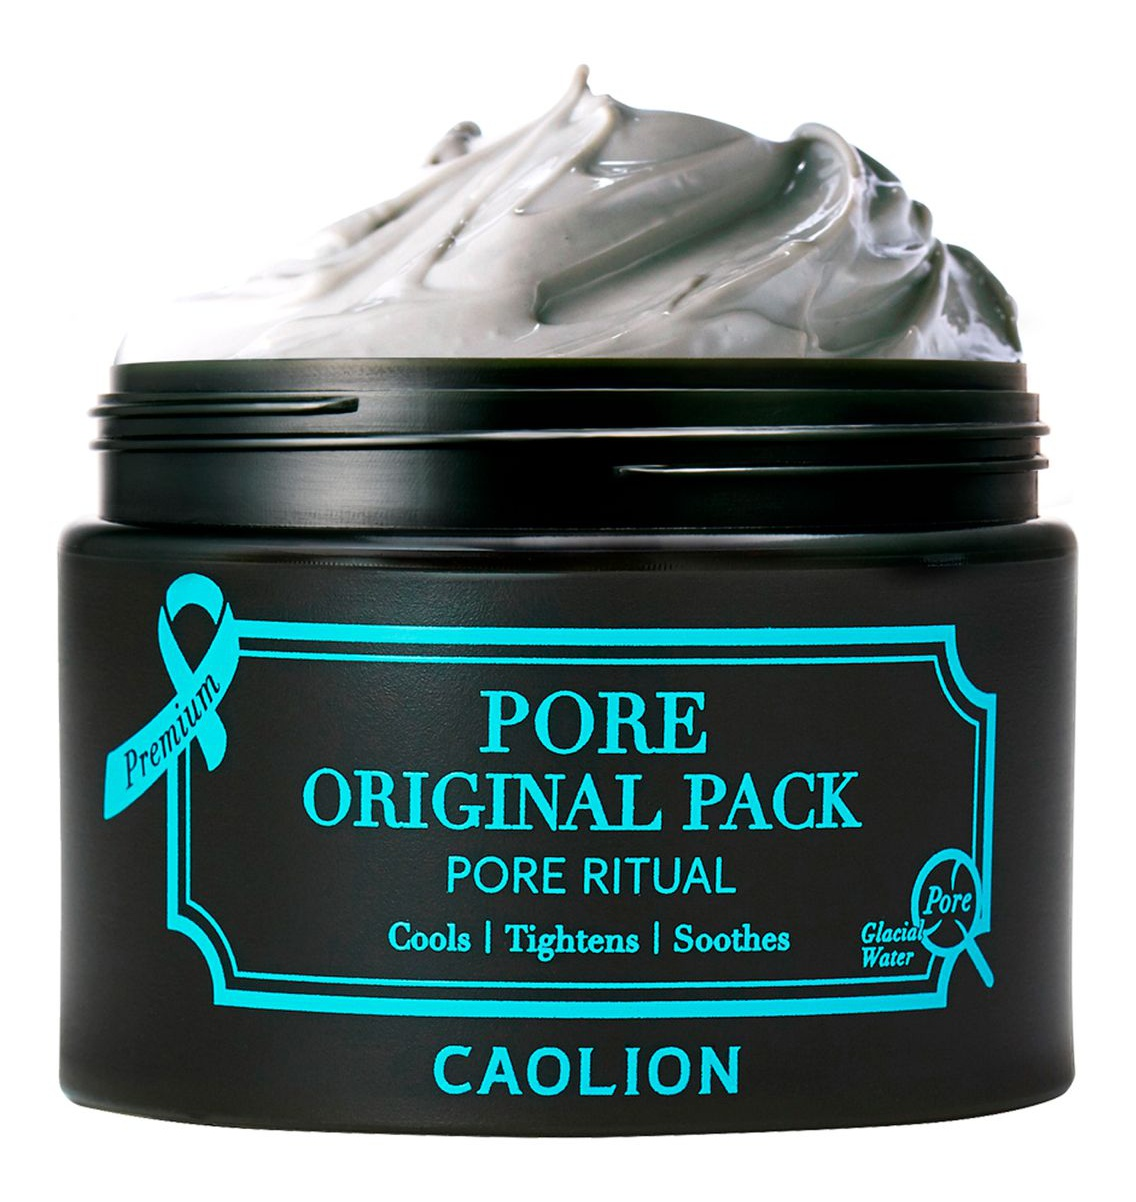 Caolion Pore Original Pack